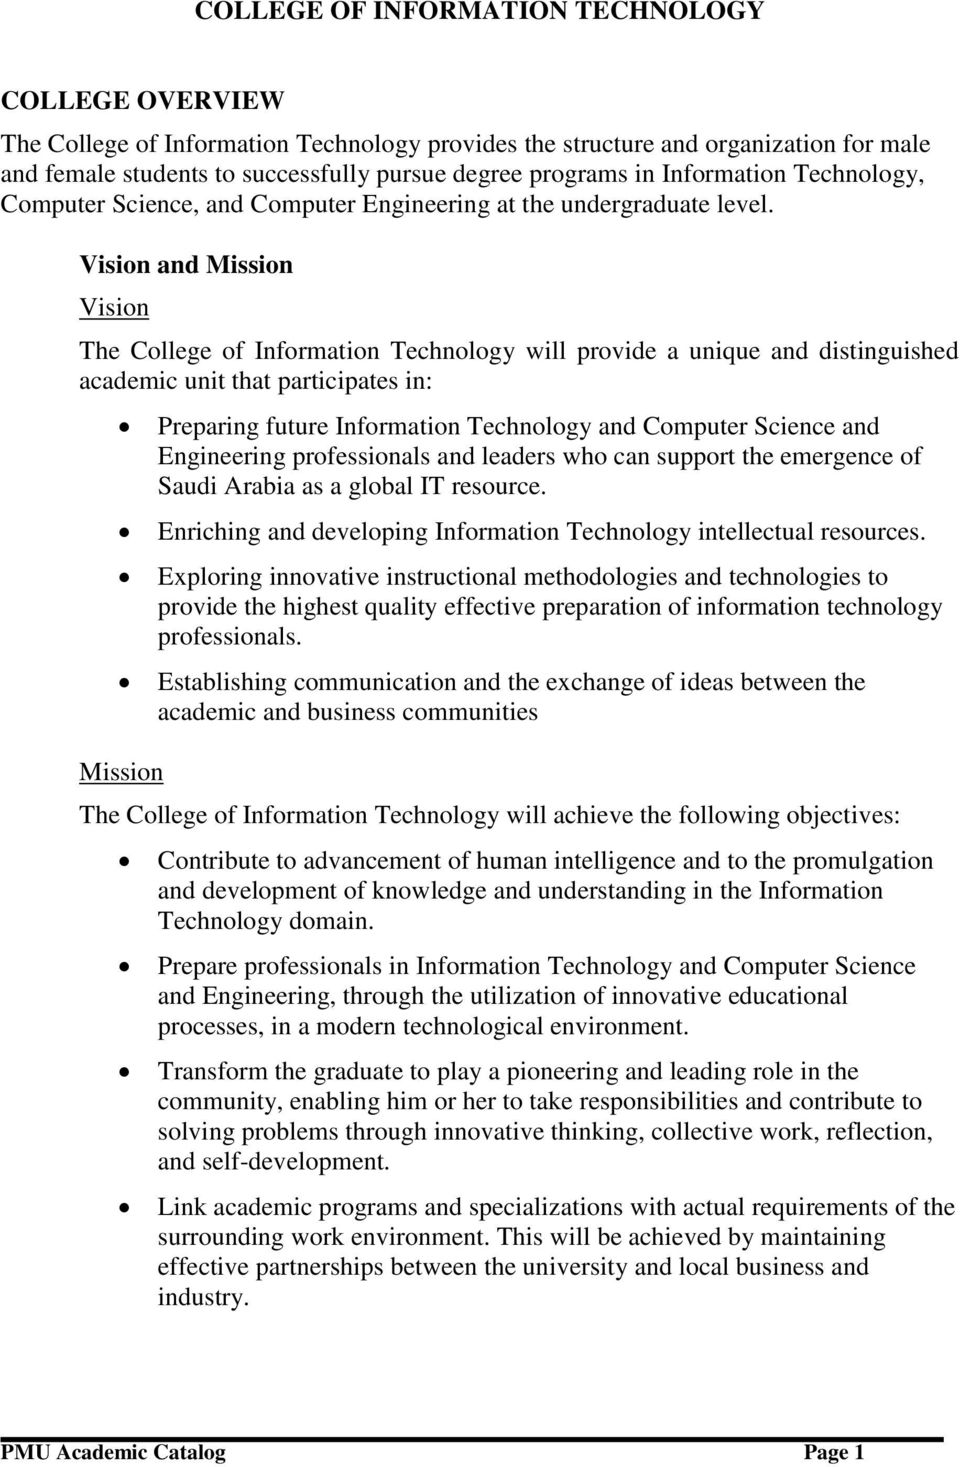 Vision and Mission Vision The College of Information Technology will provide a unique and distinguished academic unit that participates in: Mission Preparing future Information Technology and